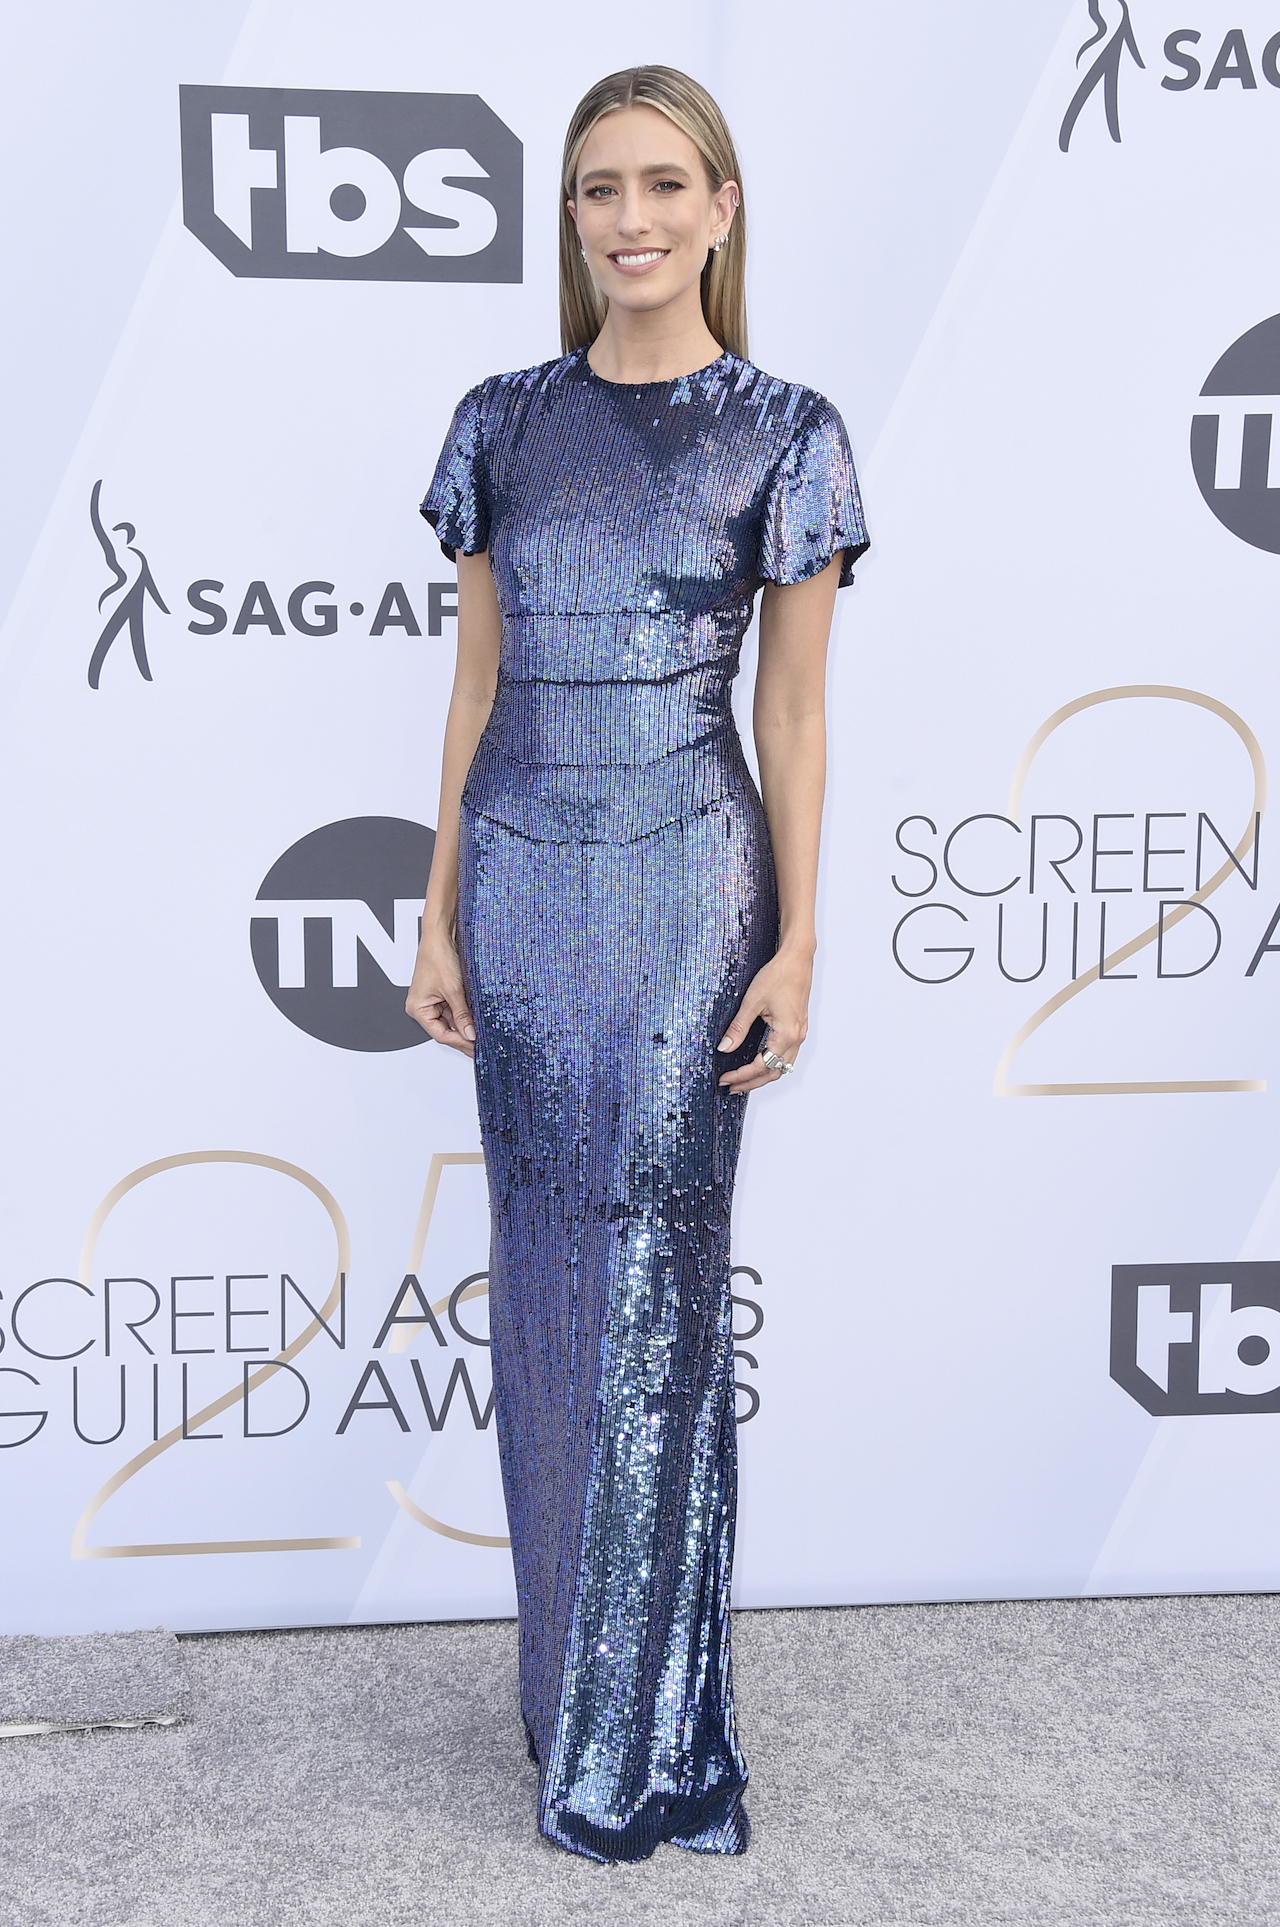 <div class='meta'><div class='origin-logo' data-origin='AP'></div><span class='caption-text' data-credit='Jordan Strauss/Invision/AP'>Renee Bargh arrives at the 25th annual Screen Actors Guild Awards at the Shrine Auditorium & Expo Hall on Sunday, Jan. 27, 2019, in Los Angeles.</span></div>